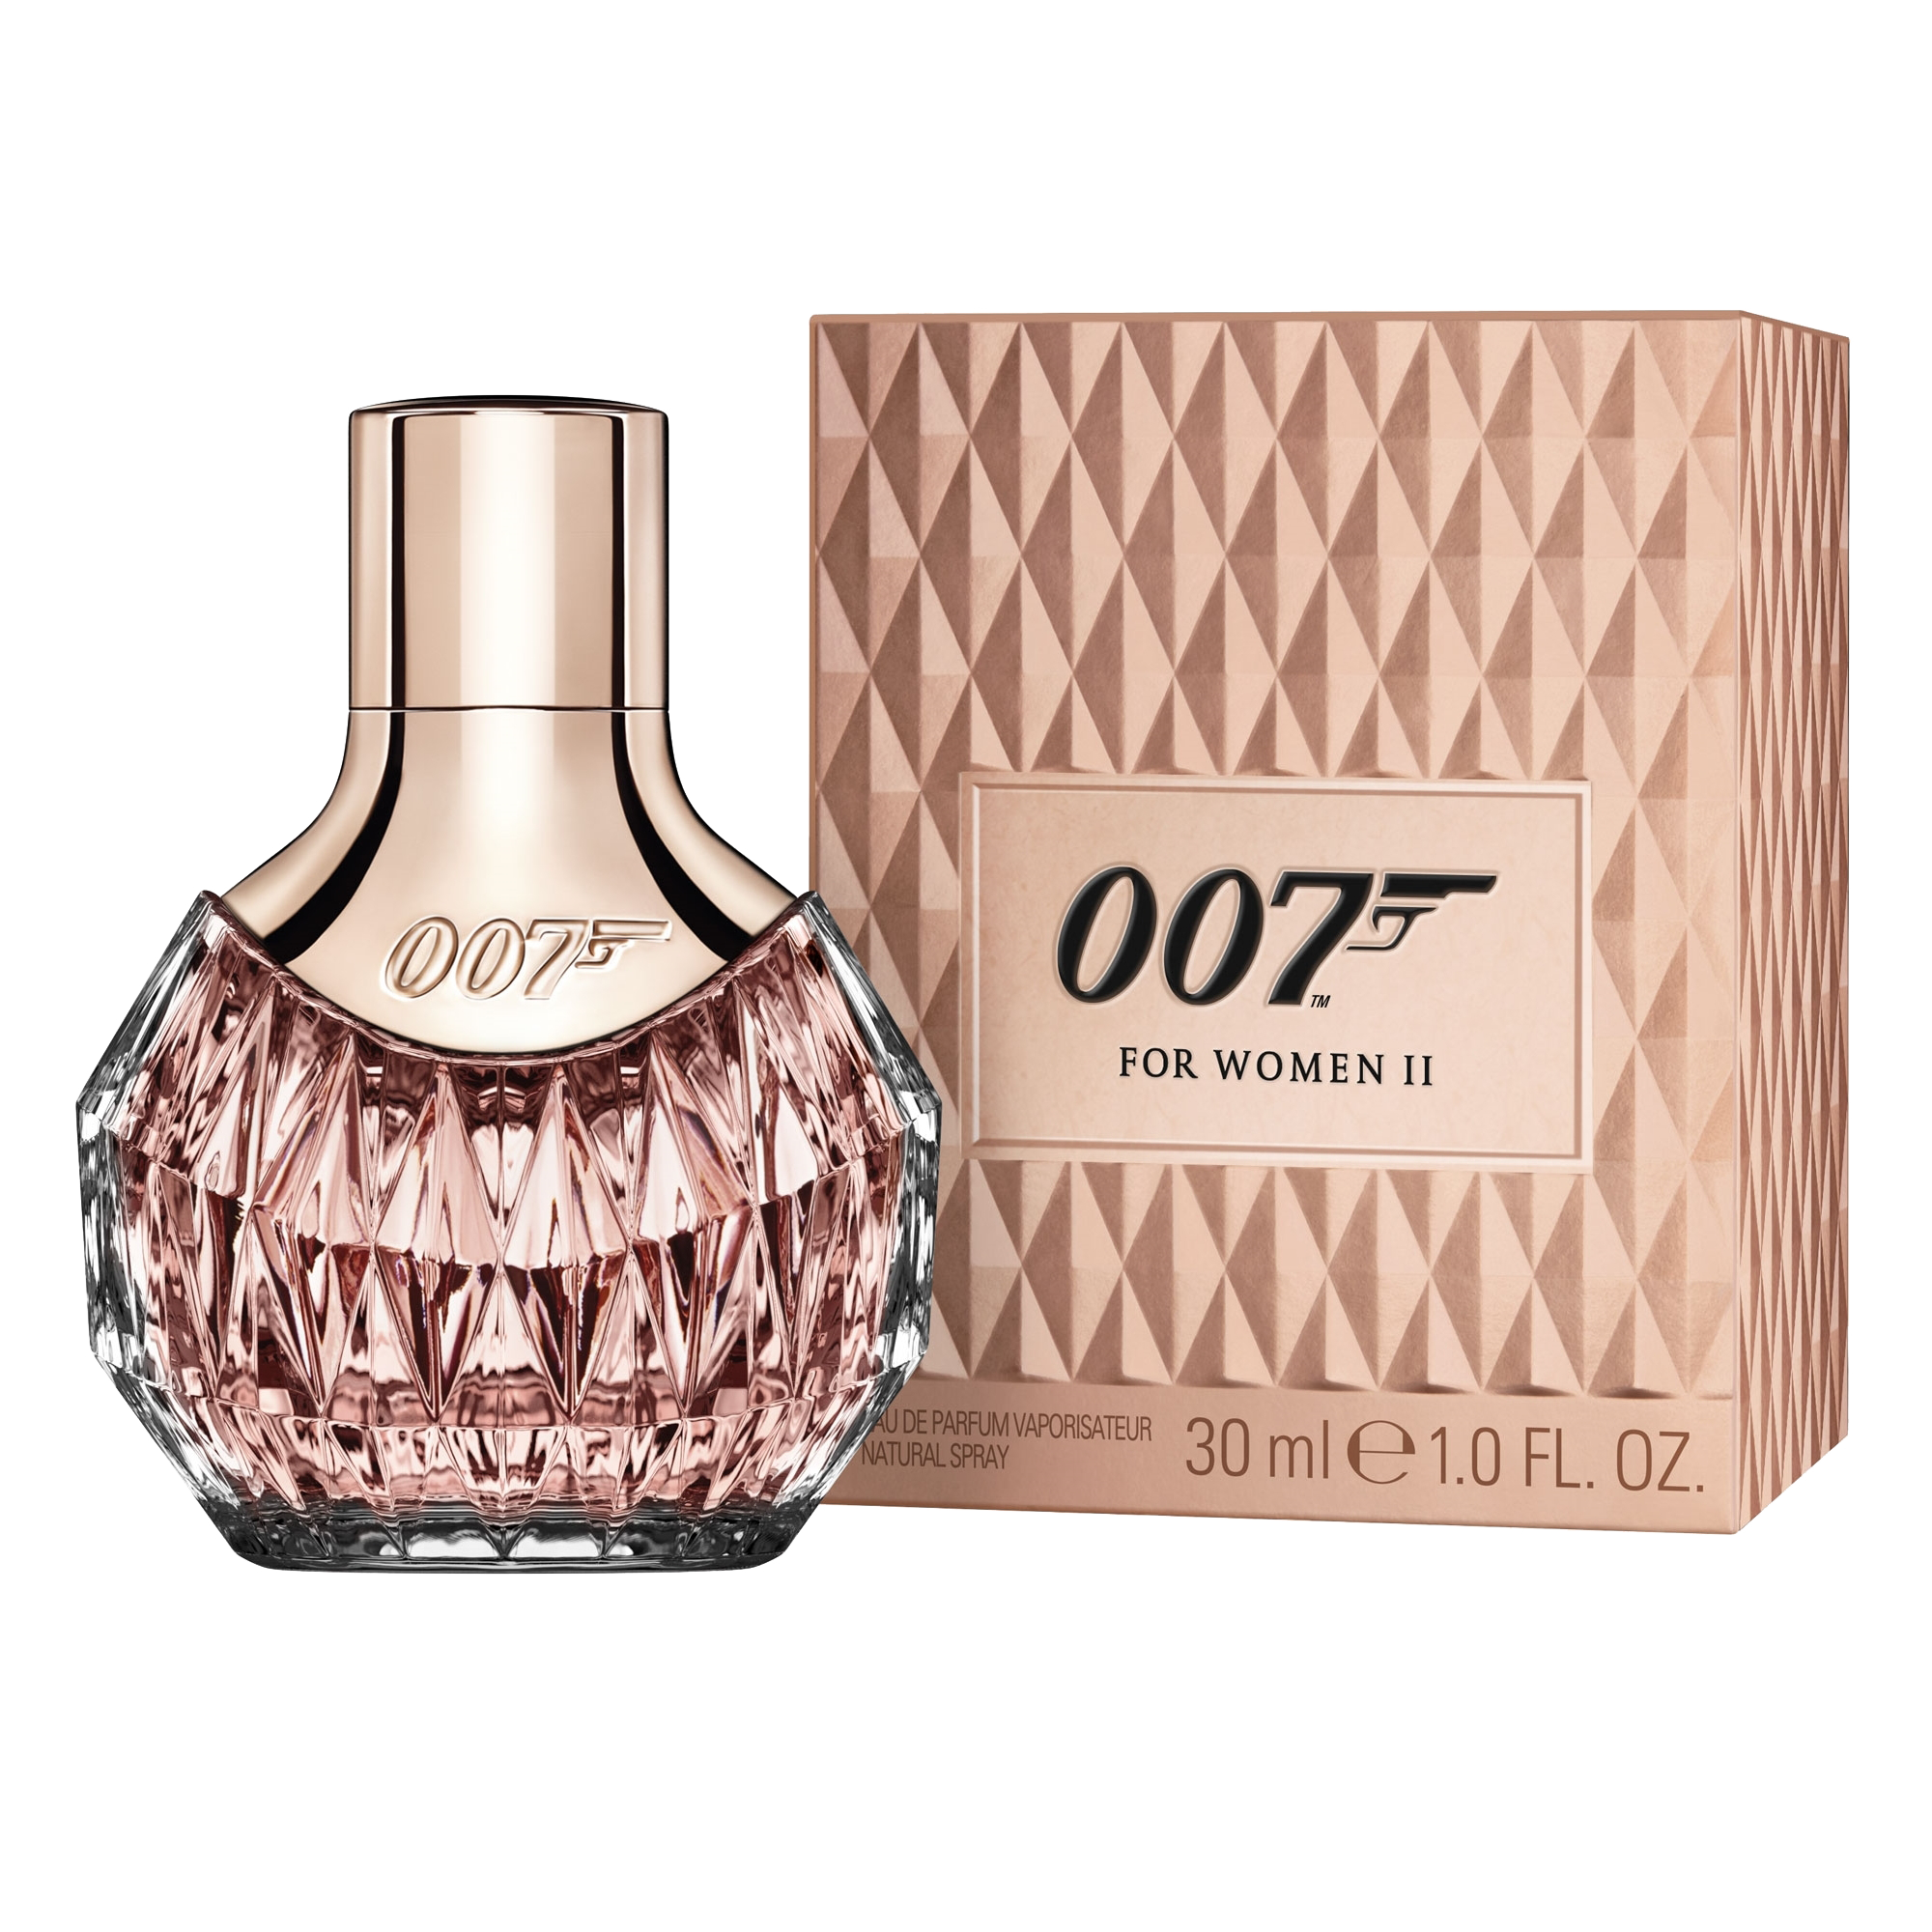 007 Women II EdP